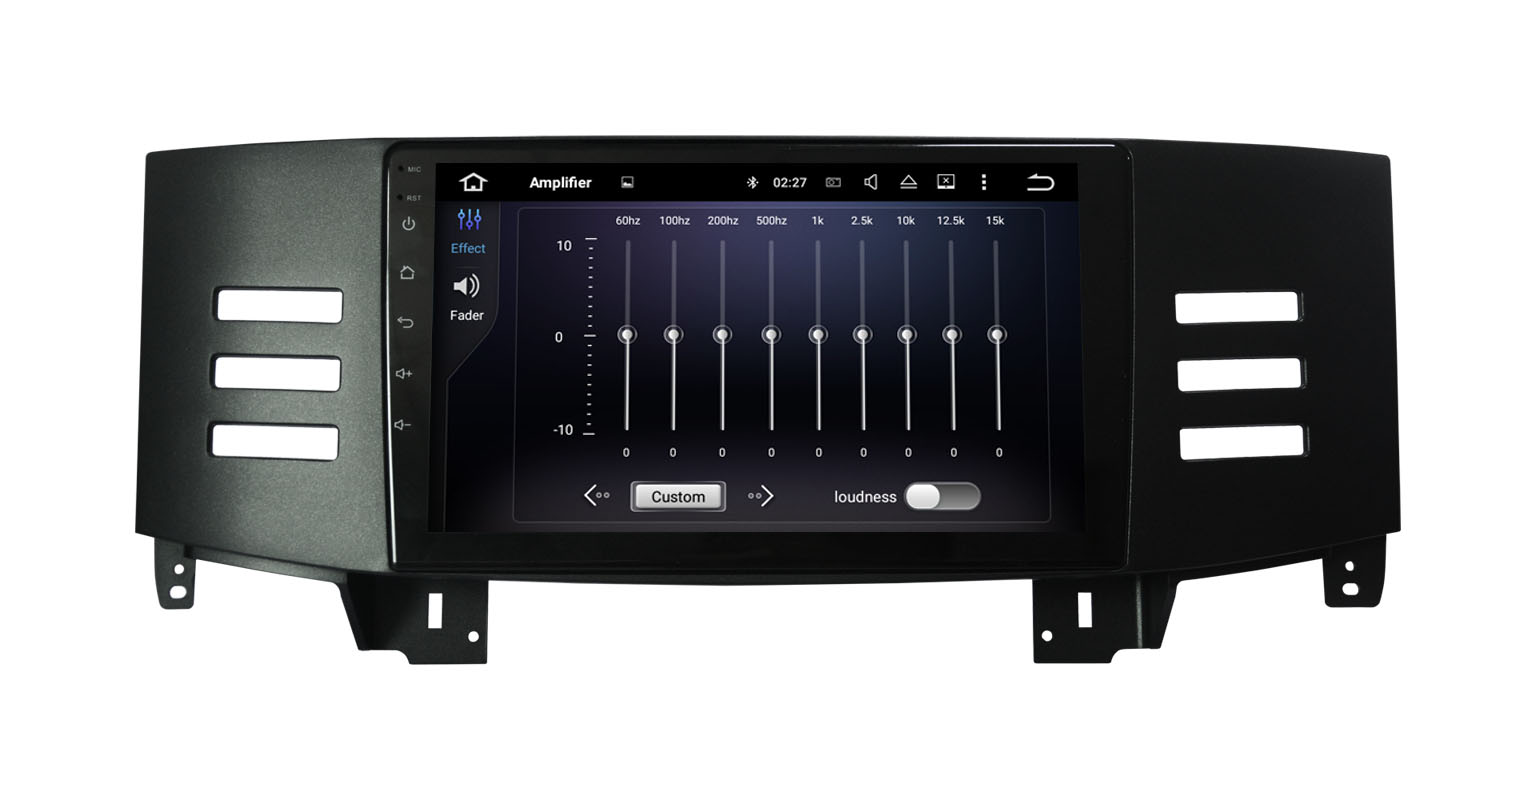 2006 Toyota Reiz Android Gps Navigation Anti-Glare Or Anti-Glare DVB-T / ISDB-T/ ATSC